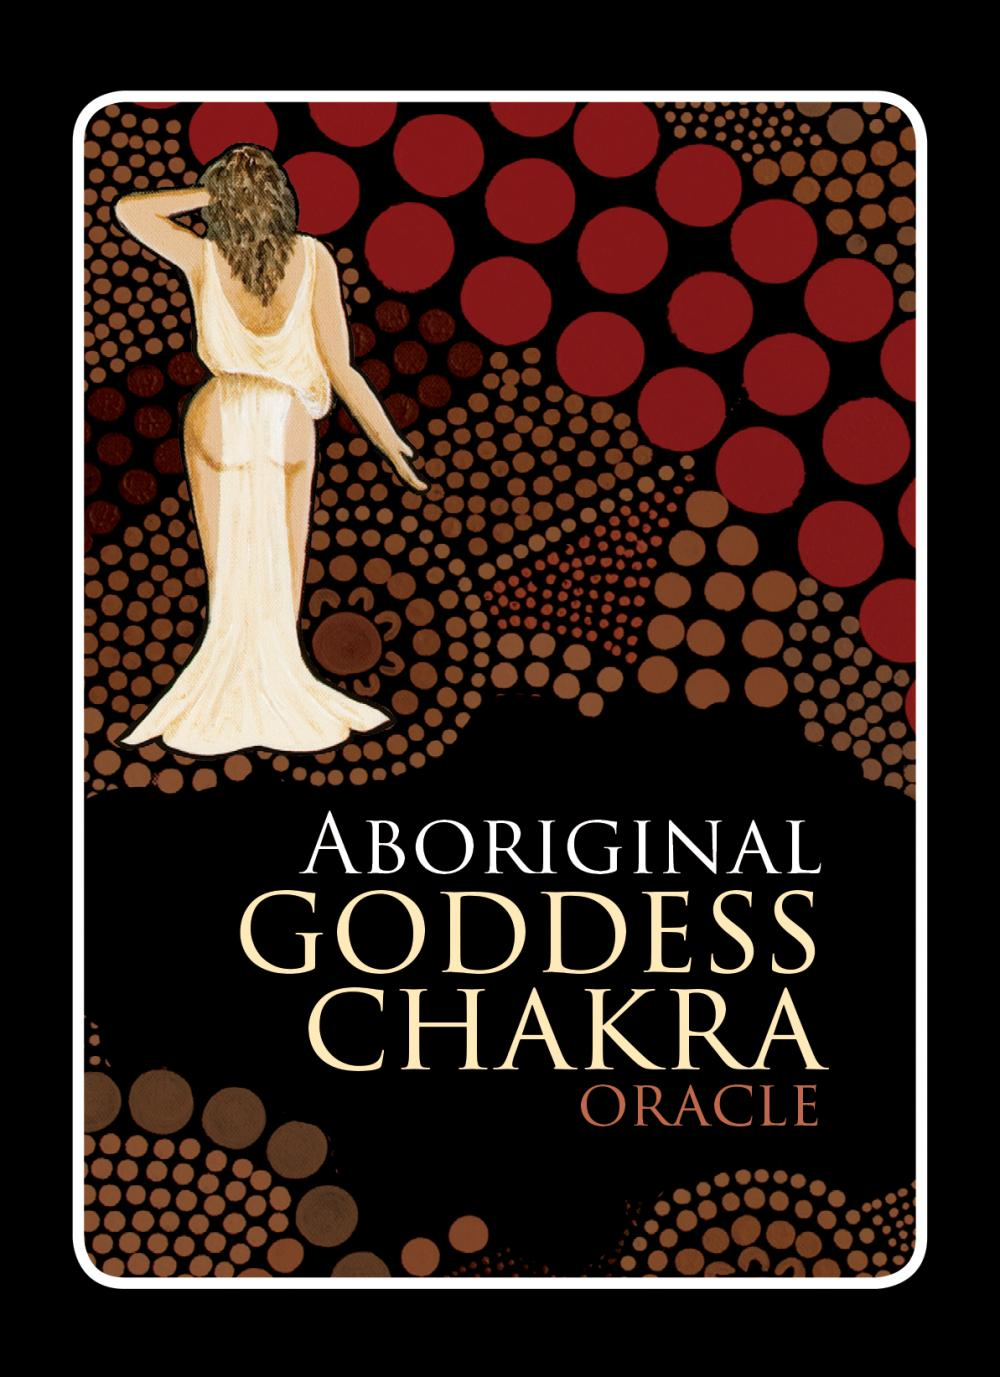 Aboriginal Chakra Goddess Oracle